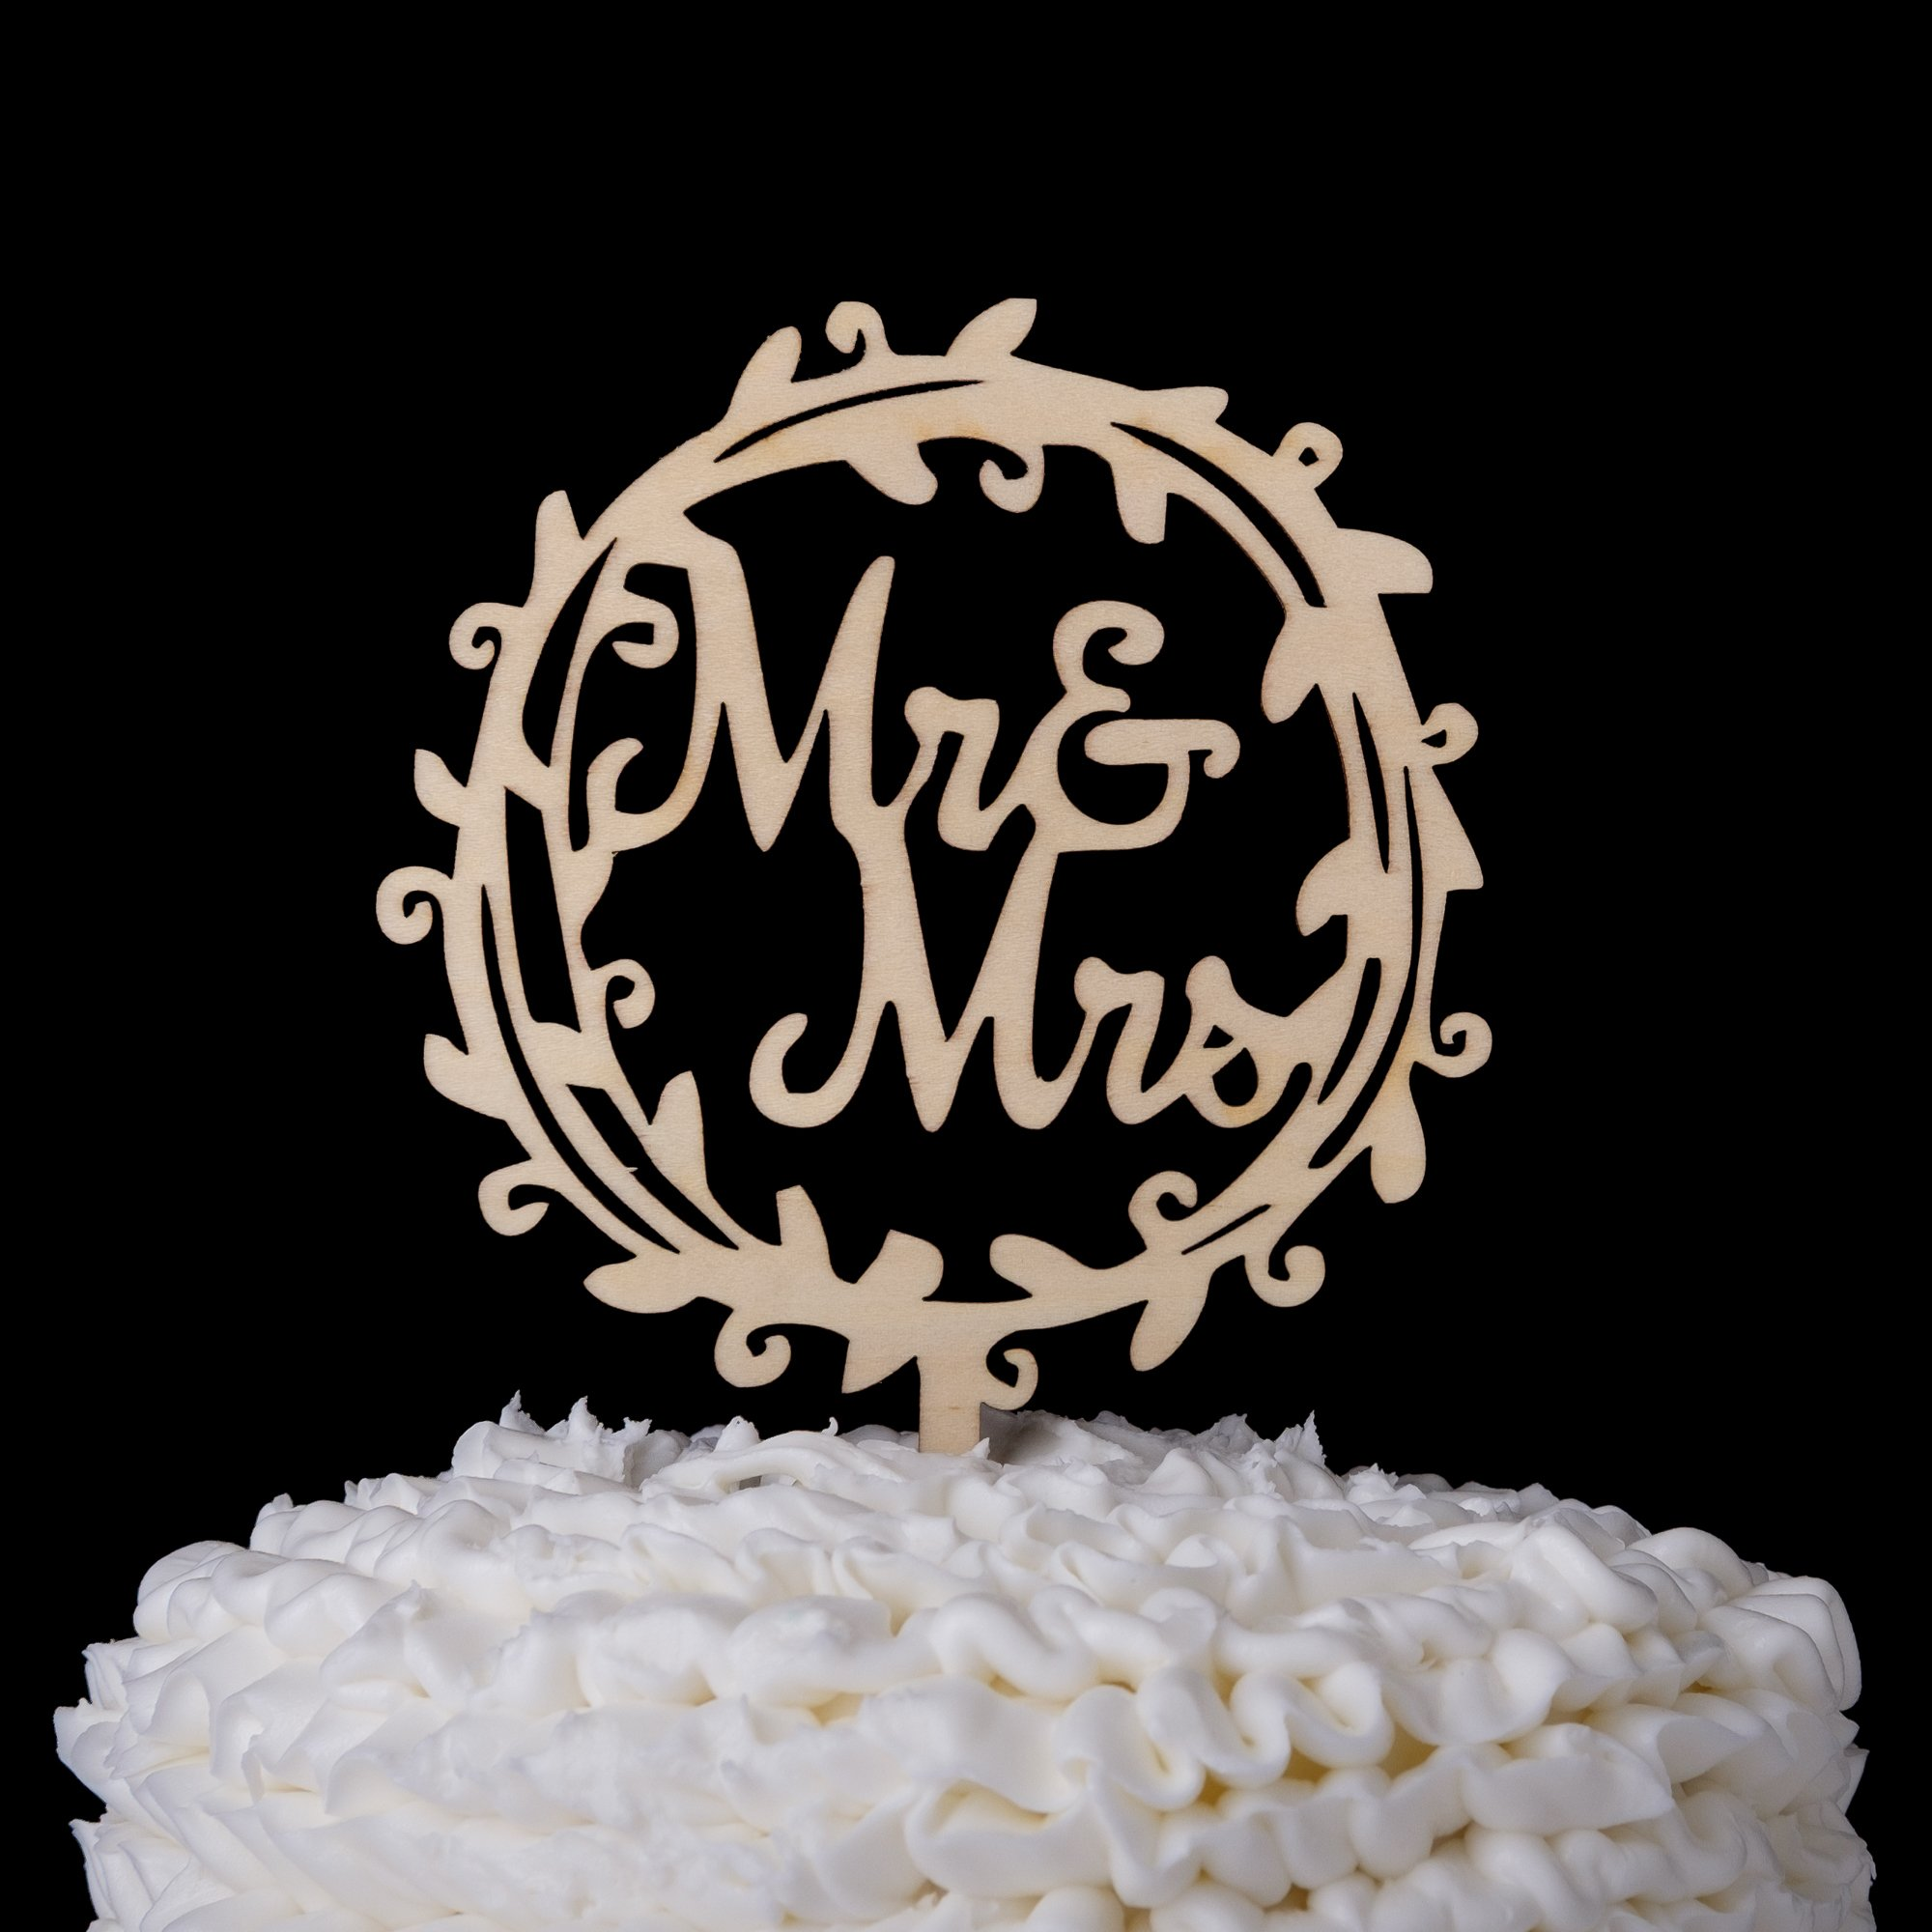 Ella Celebration Mr & Mrs Wooden Wedding Cake Topper Small 4.5 Inches Rustic Wood Floral Wreath Flowers, Olive Branch (Mr & Mrs Wreath) by Ella Celebration (Image #4)